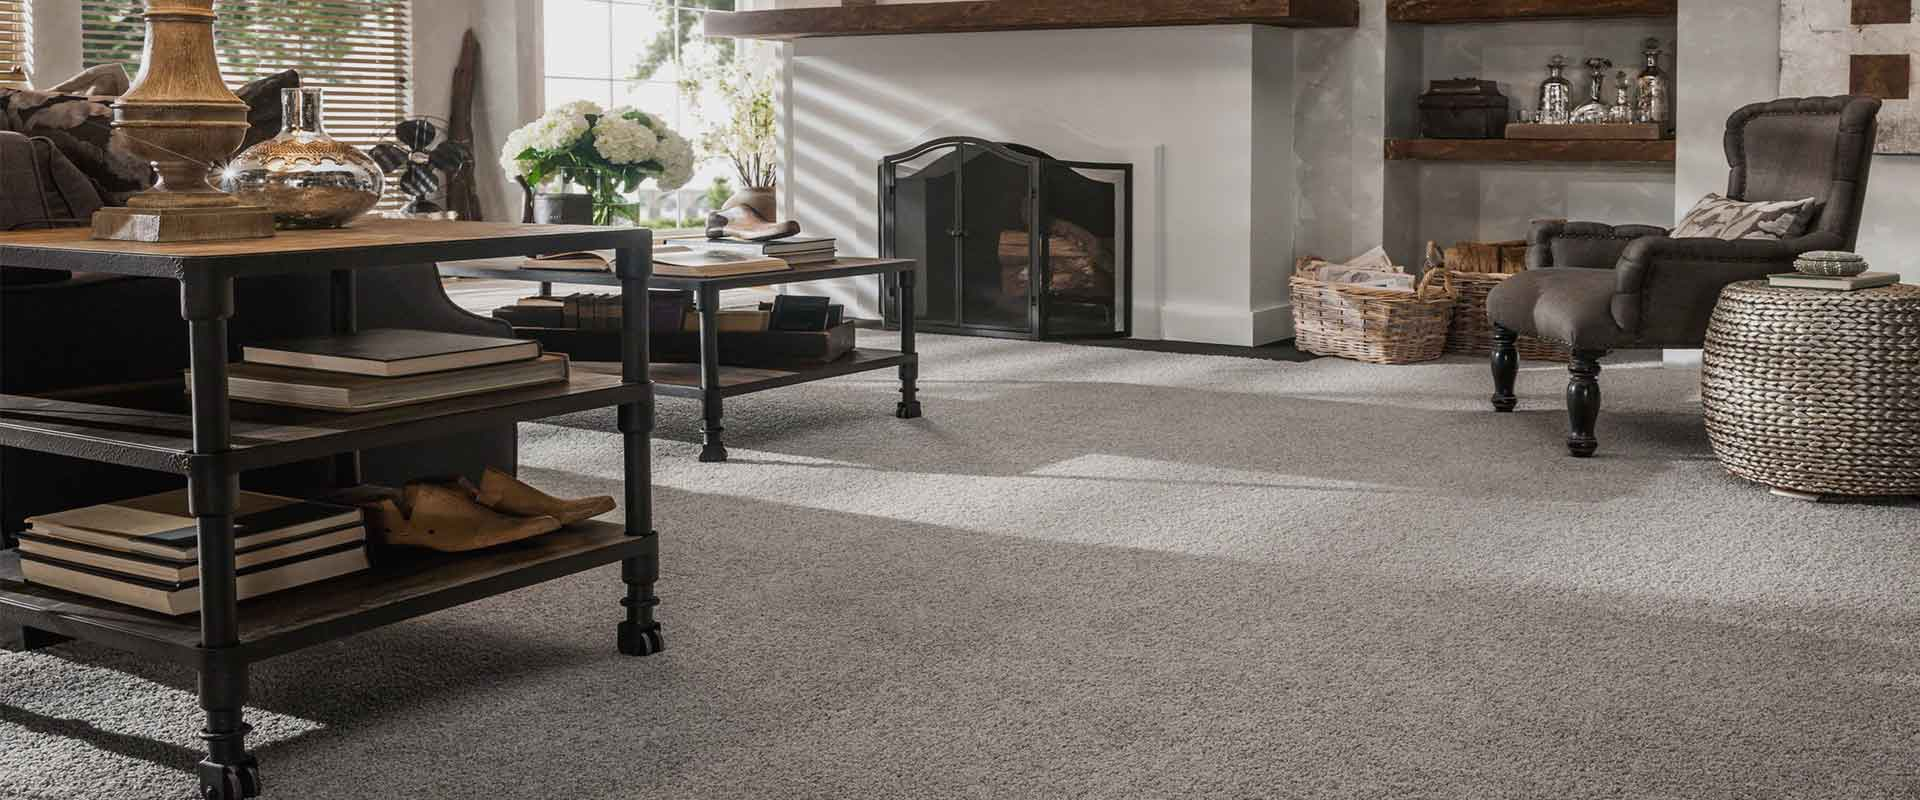 Dependable Carpet Care Living Room Carpet Dry-Cleaning